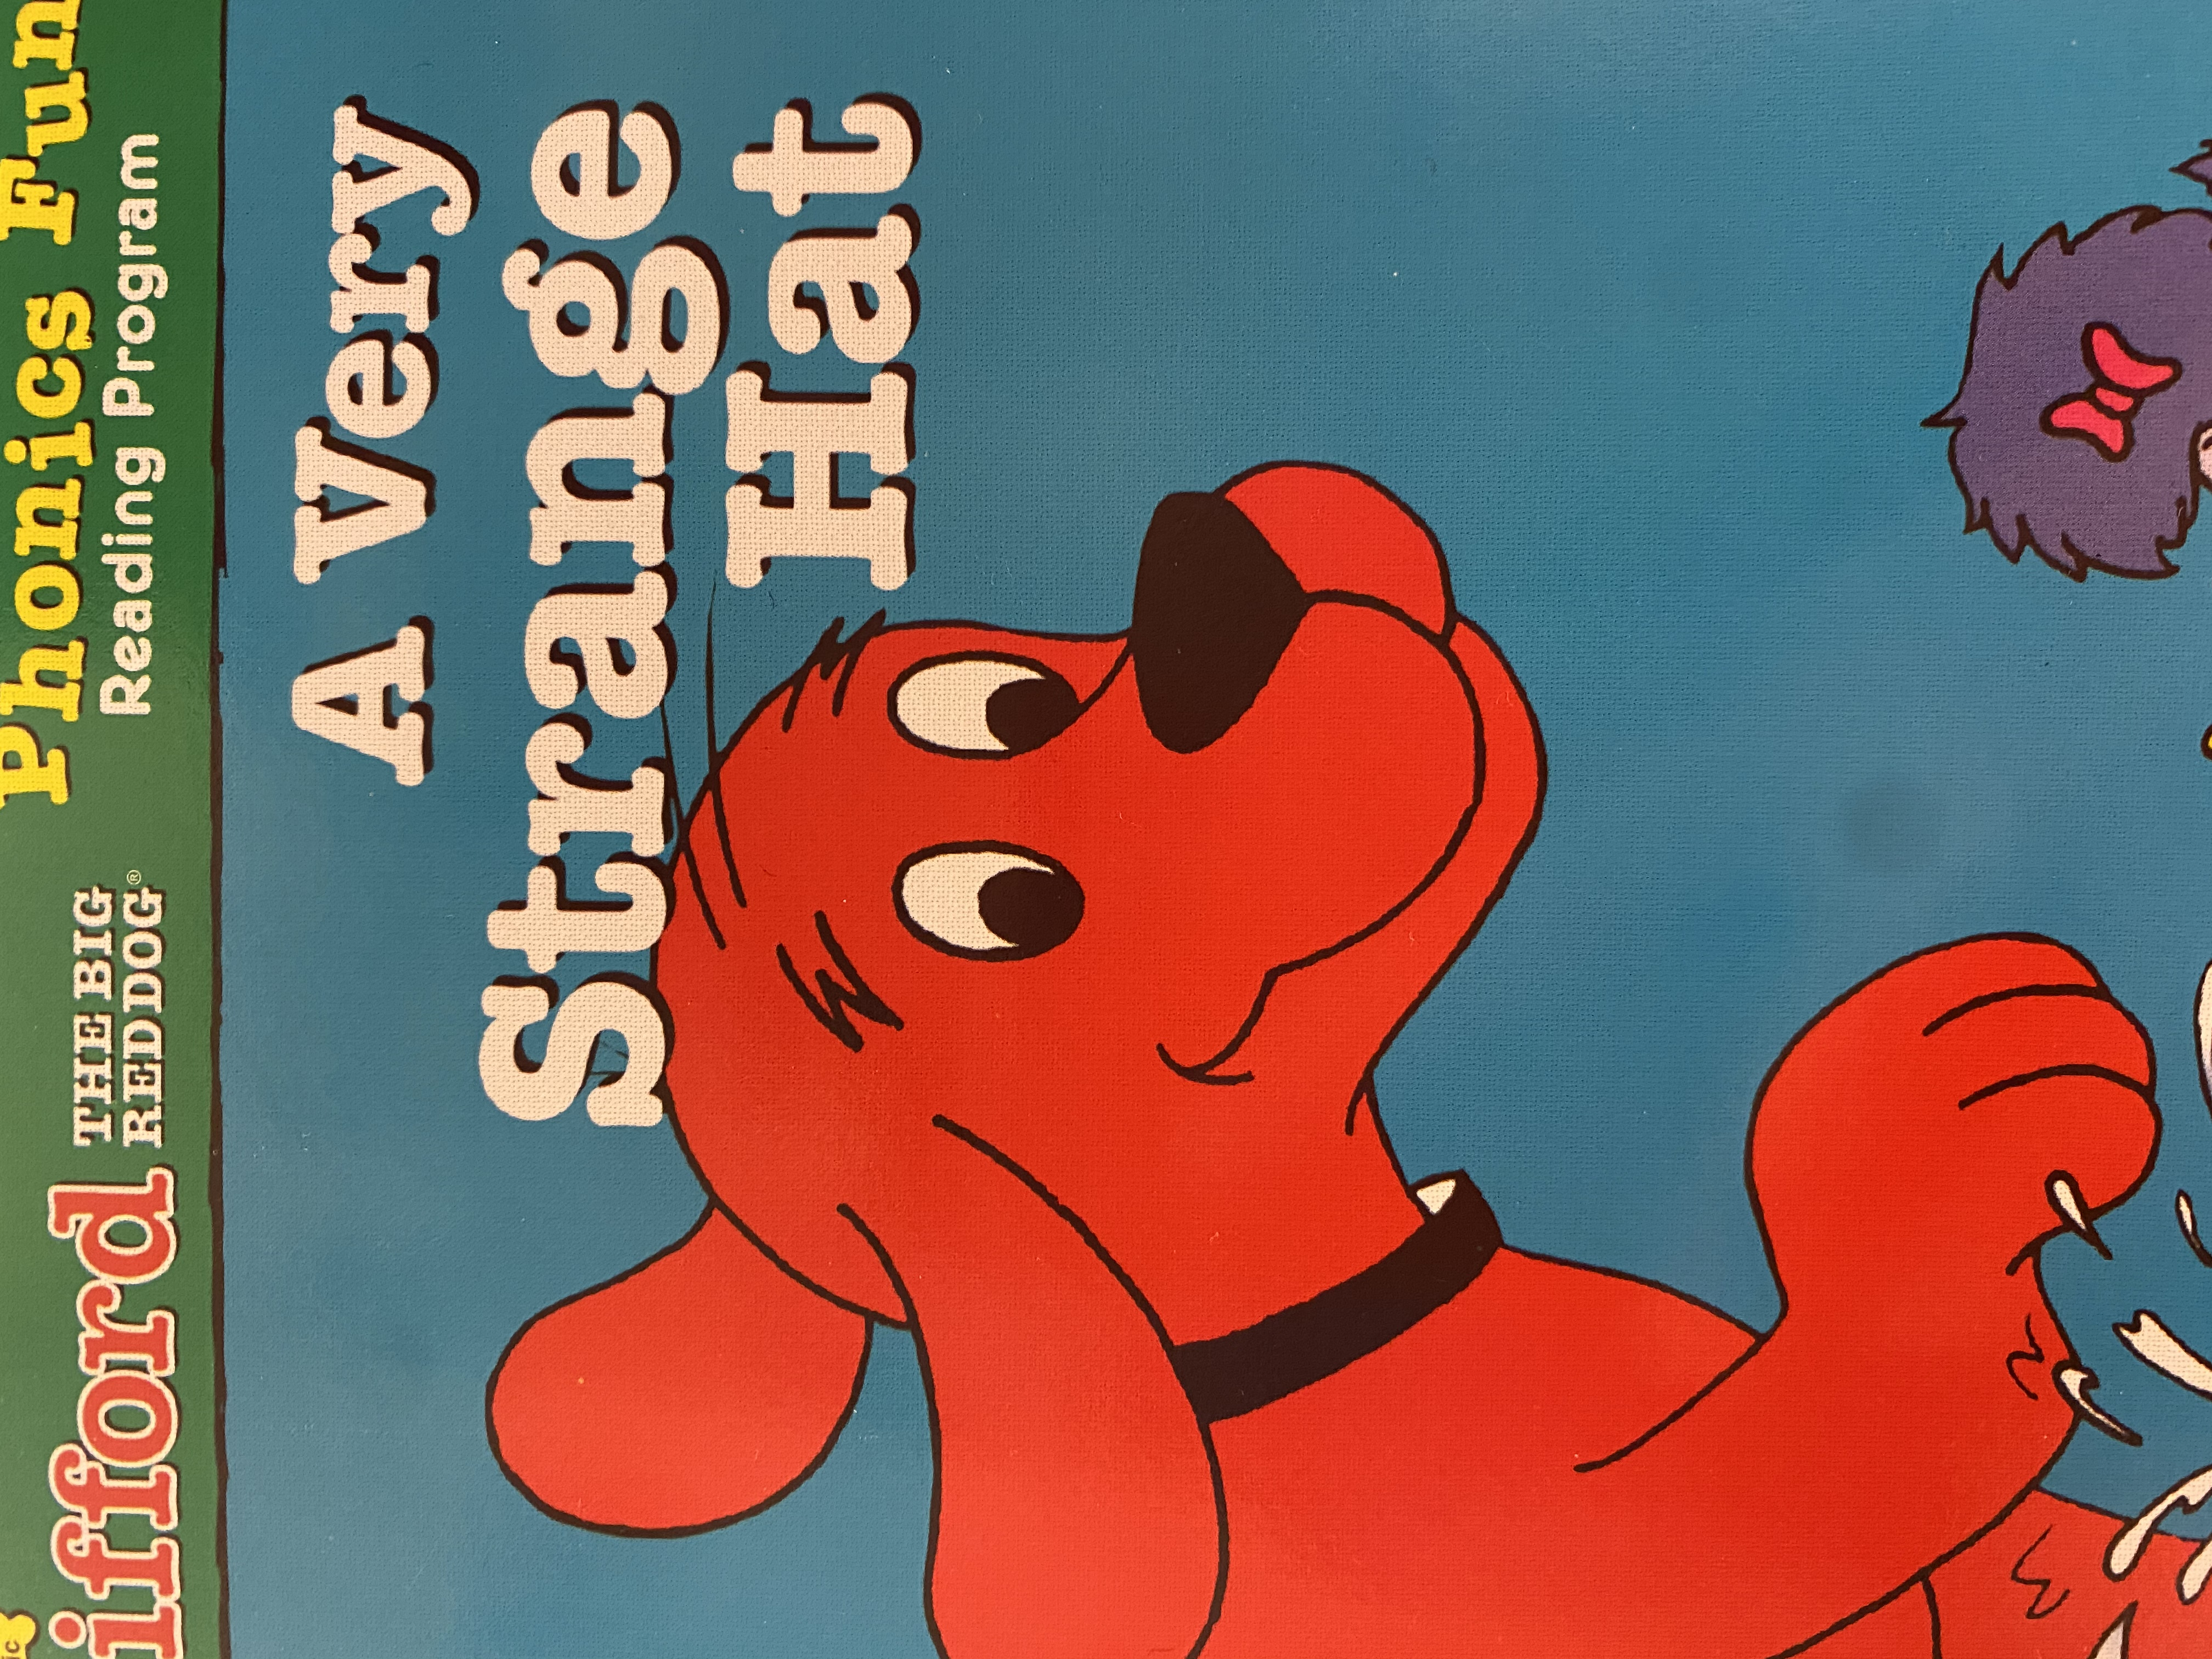 S3-036/ a very strange hat/ Clifford the big red dog/ pack 4